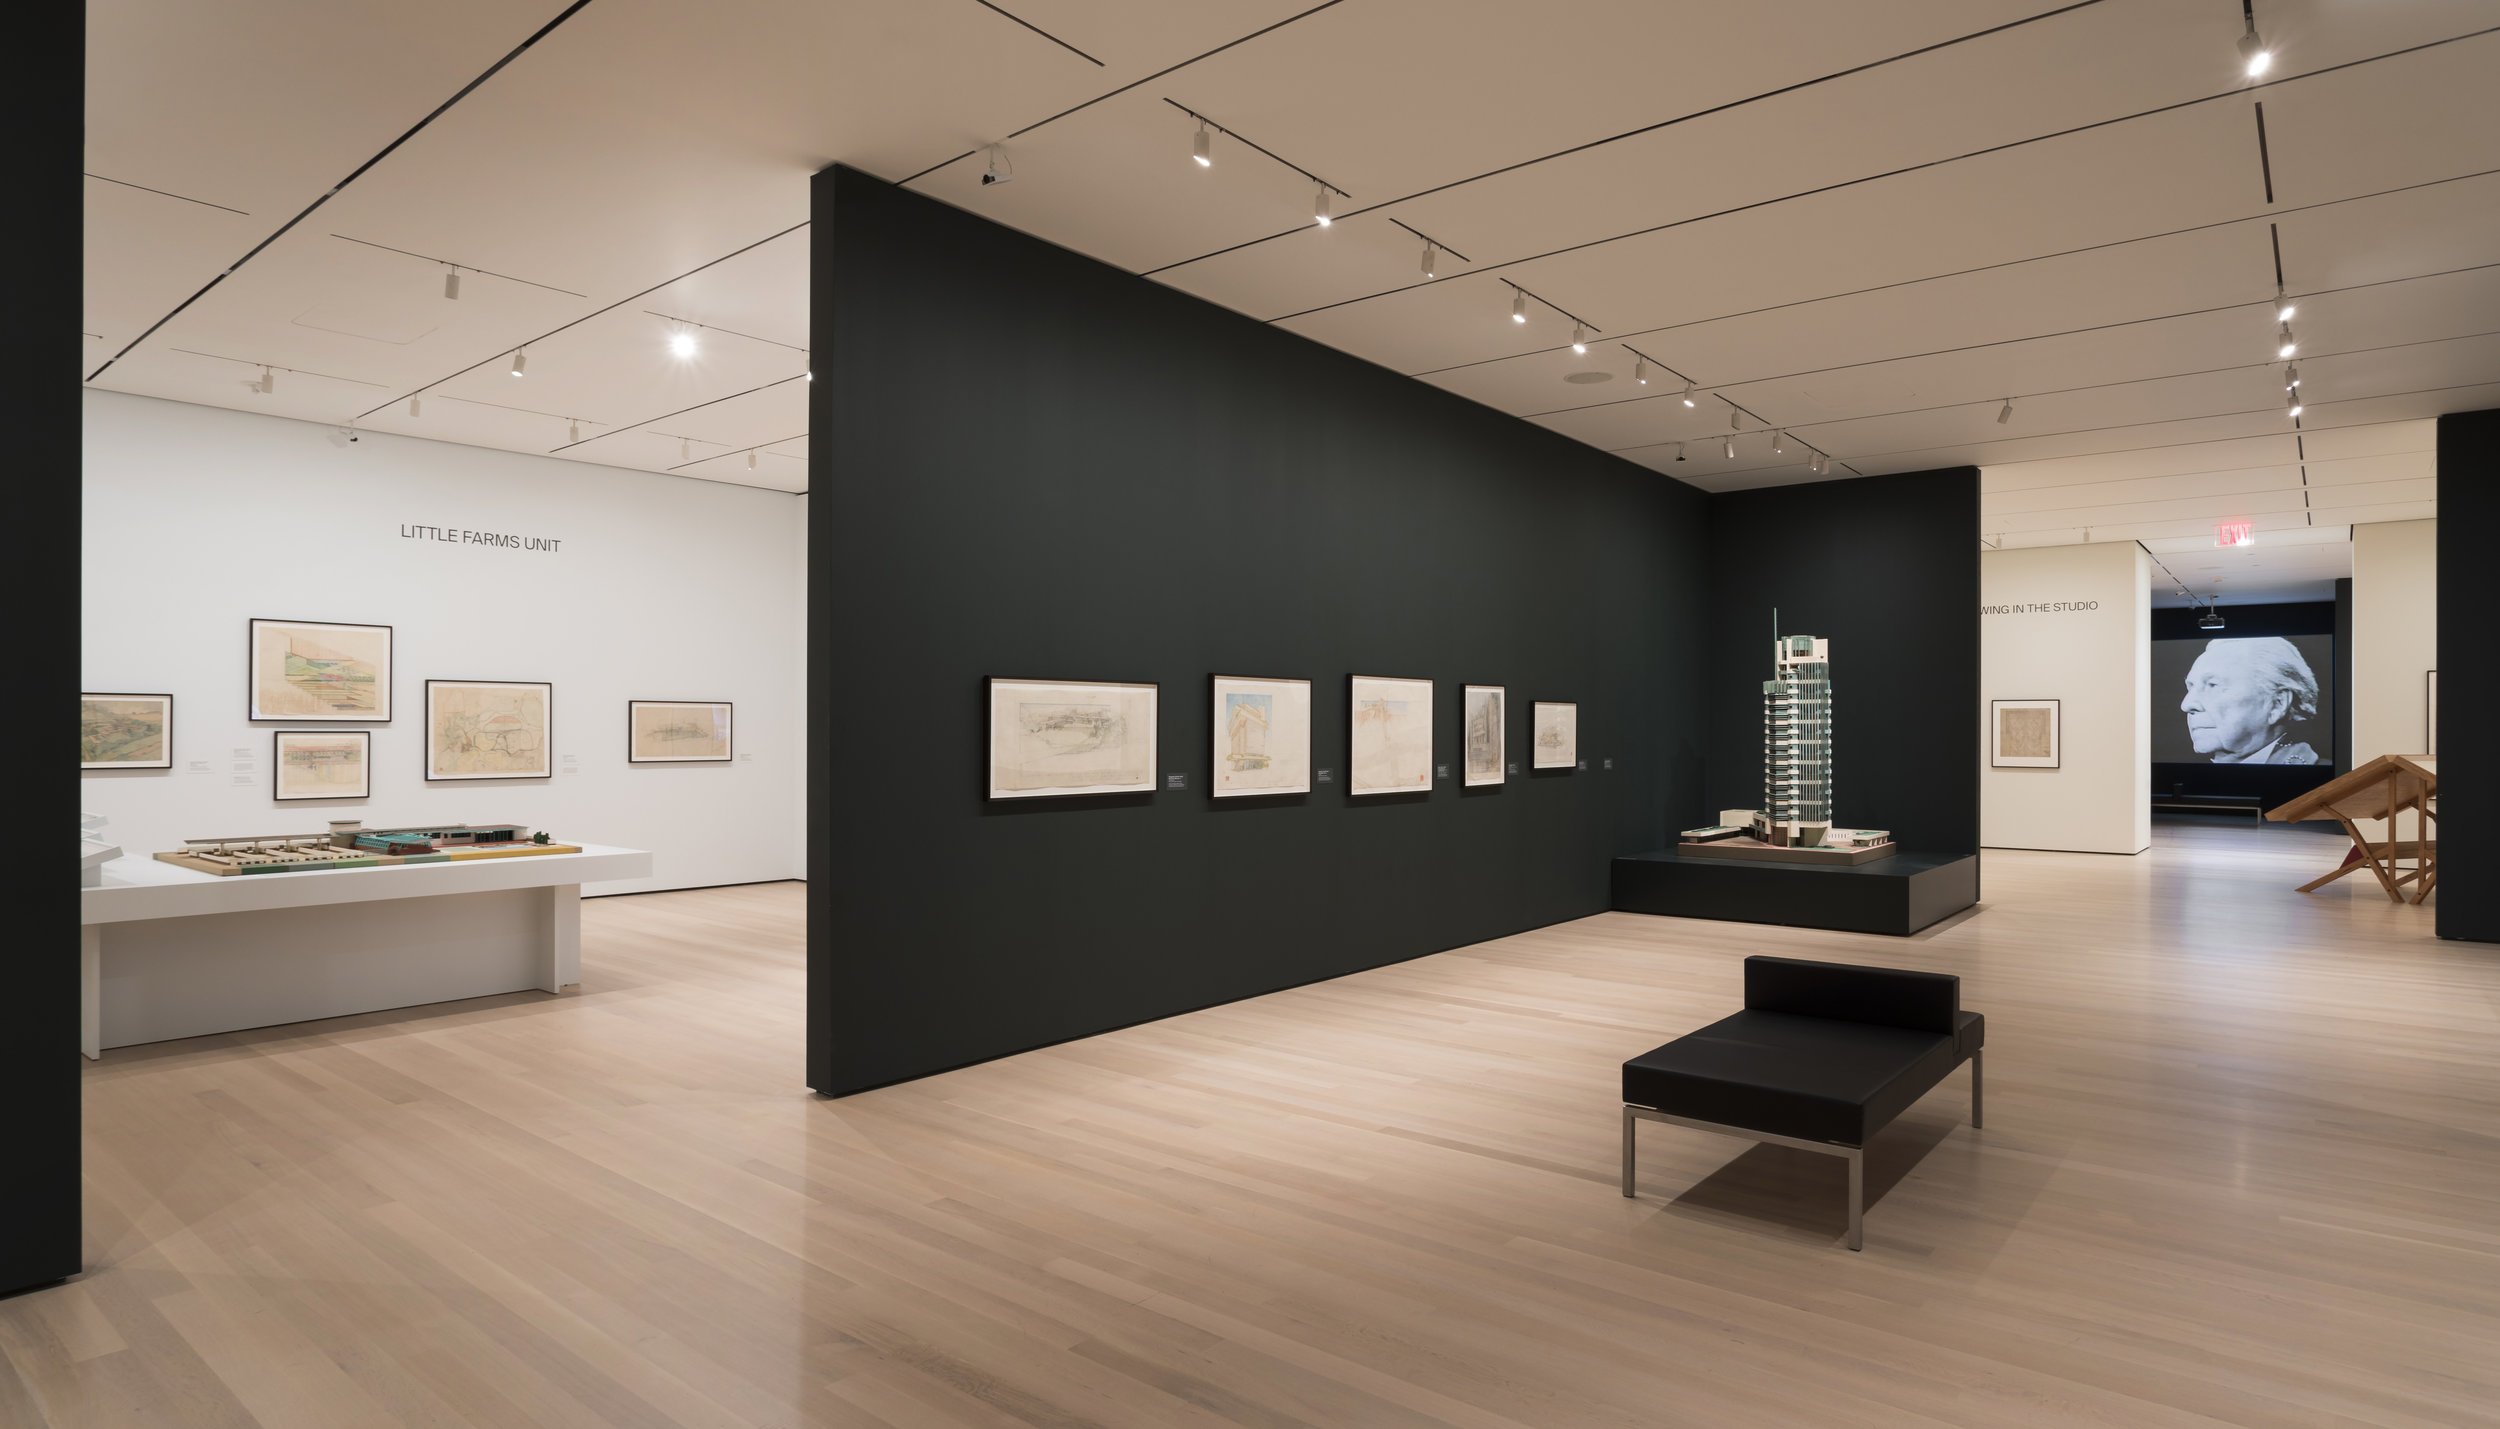 The Frank Lloyd Wright at 150: Unpacking the Archive exhibit at the Museum of Modern Art. image: The Frank Lloyd Wright Foundation Archives, The Museum of Modern Art, Avery Architectural & Fine Arts Library, Columbia University, New York